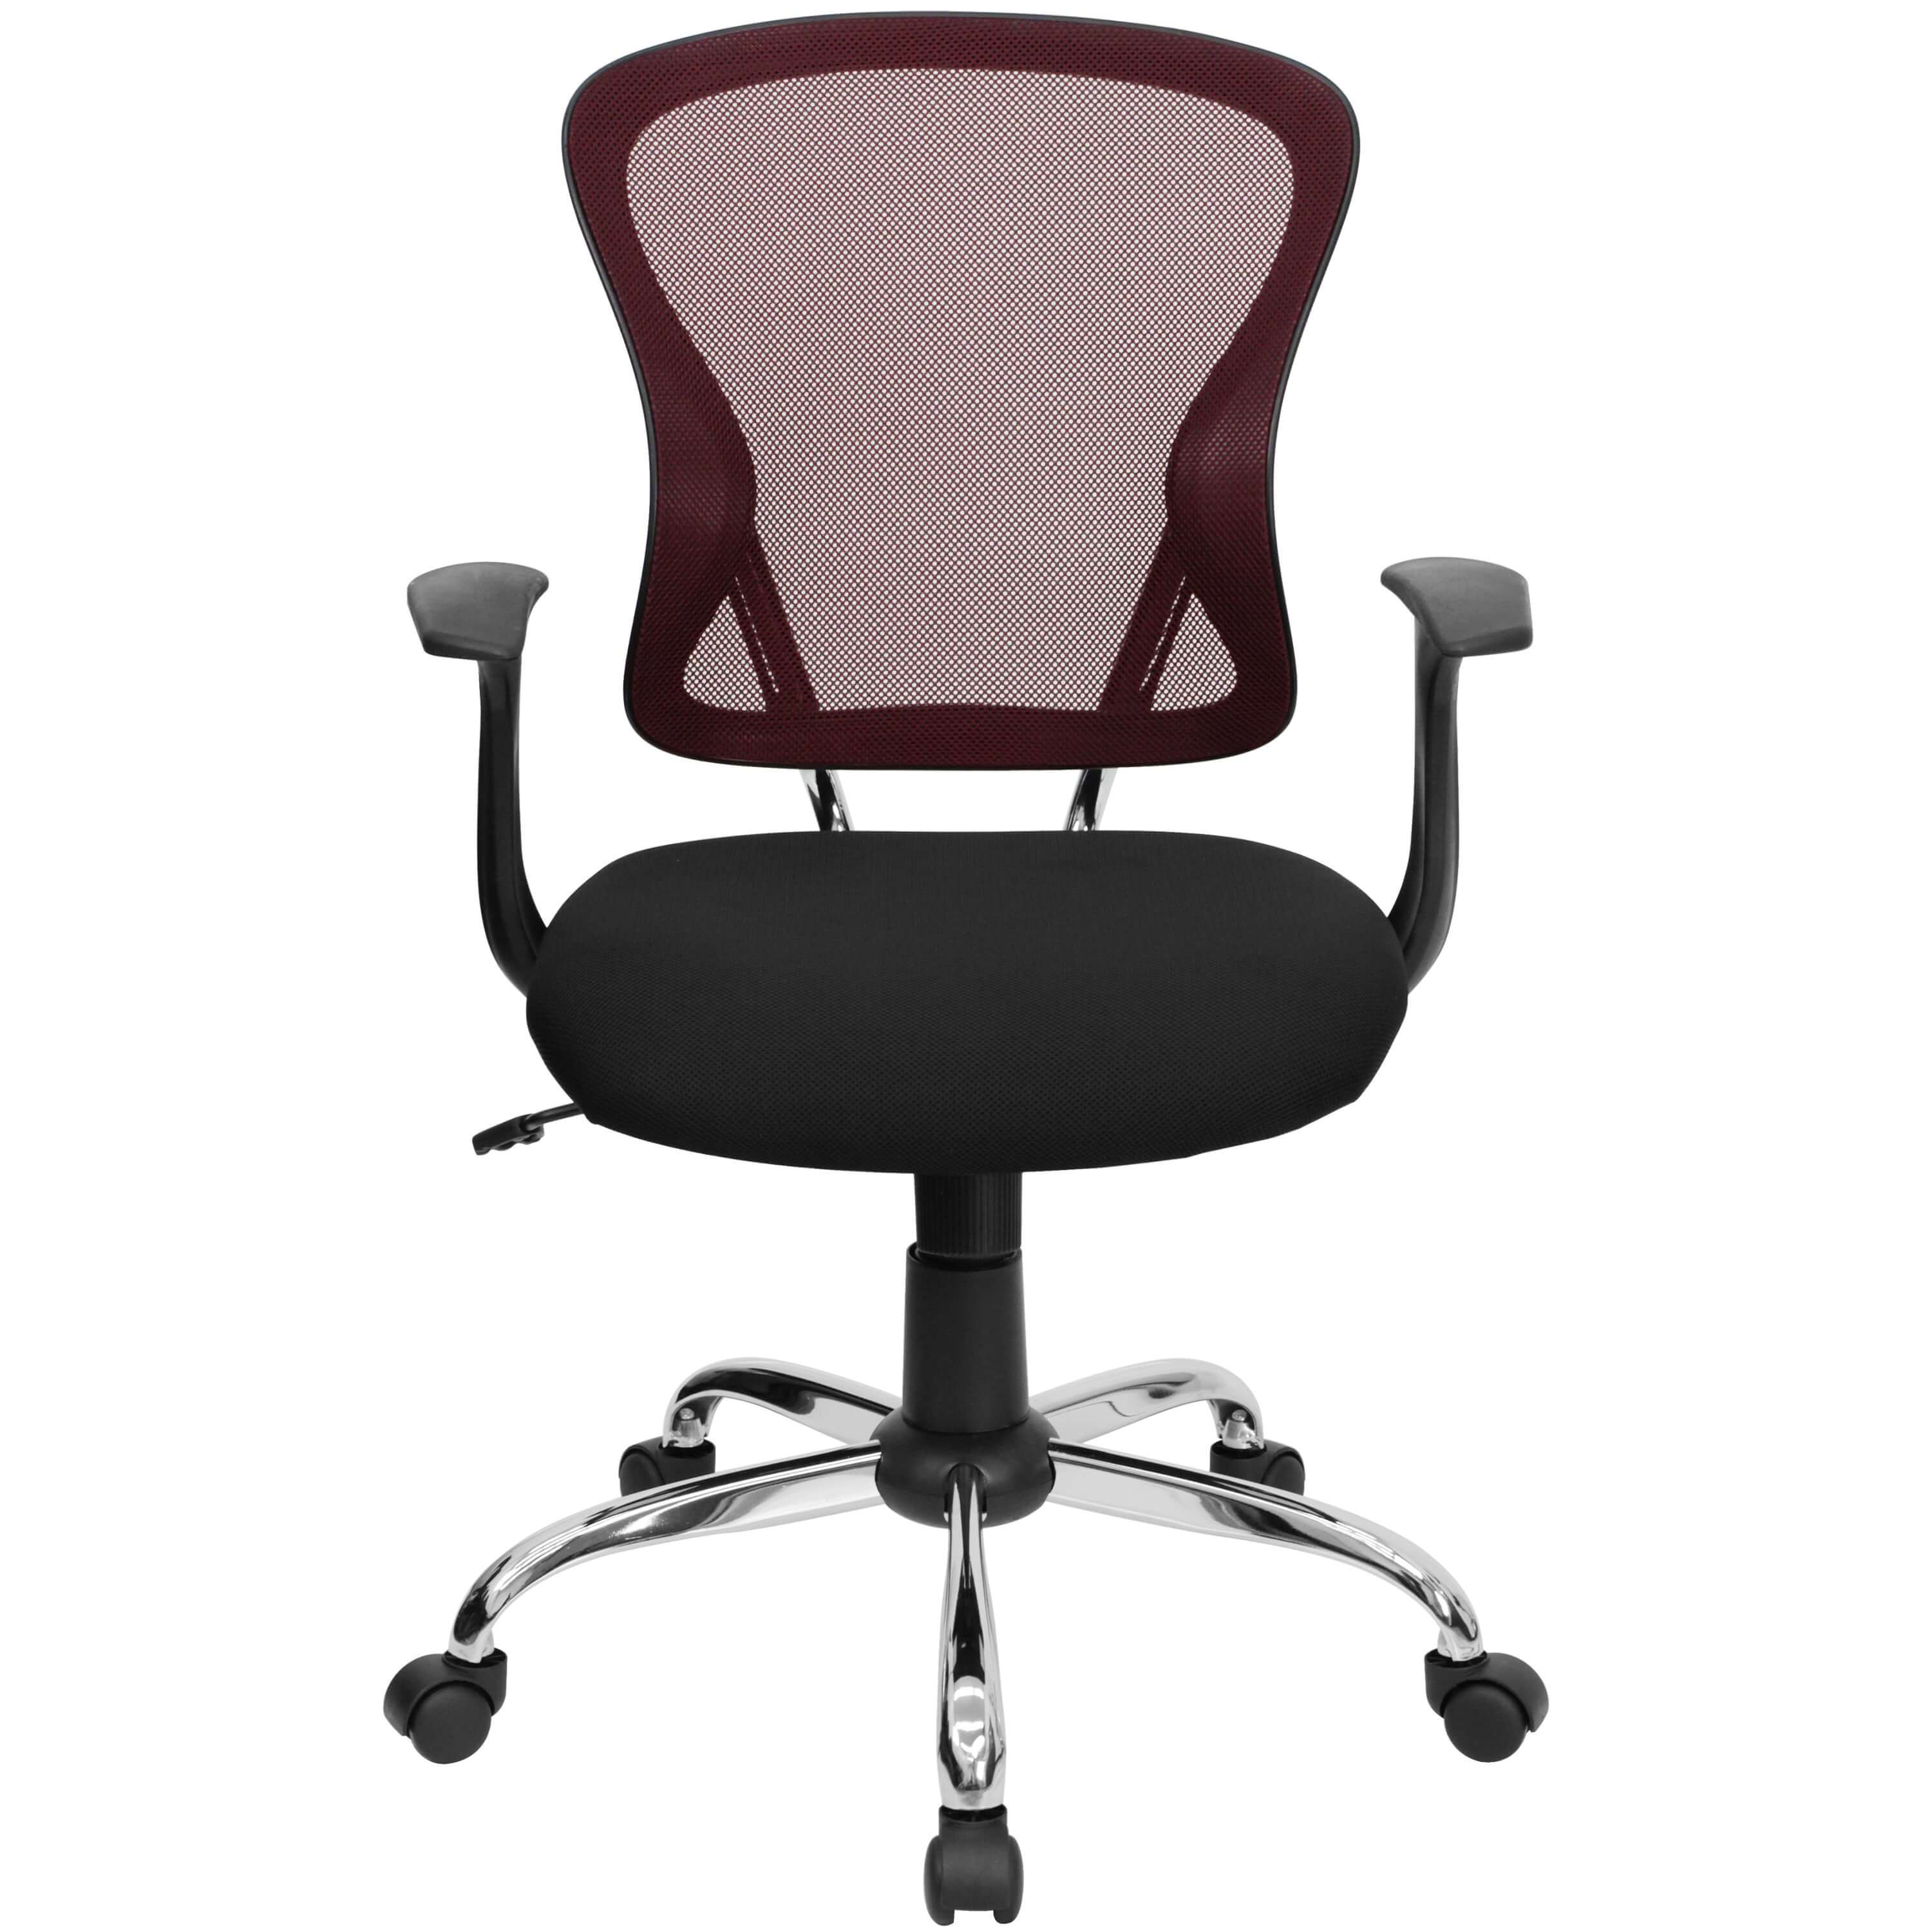 Colorful desk chairs CUB H 8369F BG GG FLA